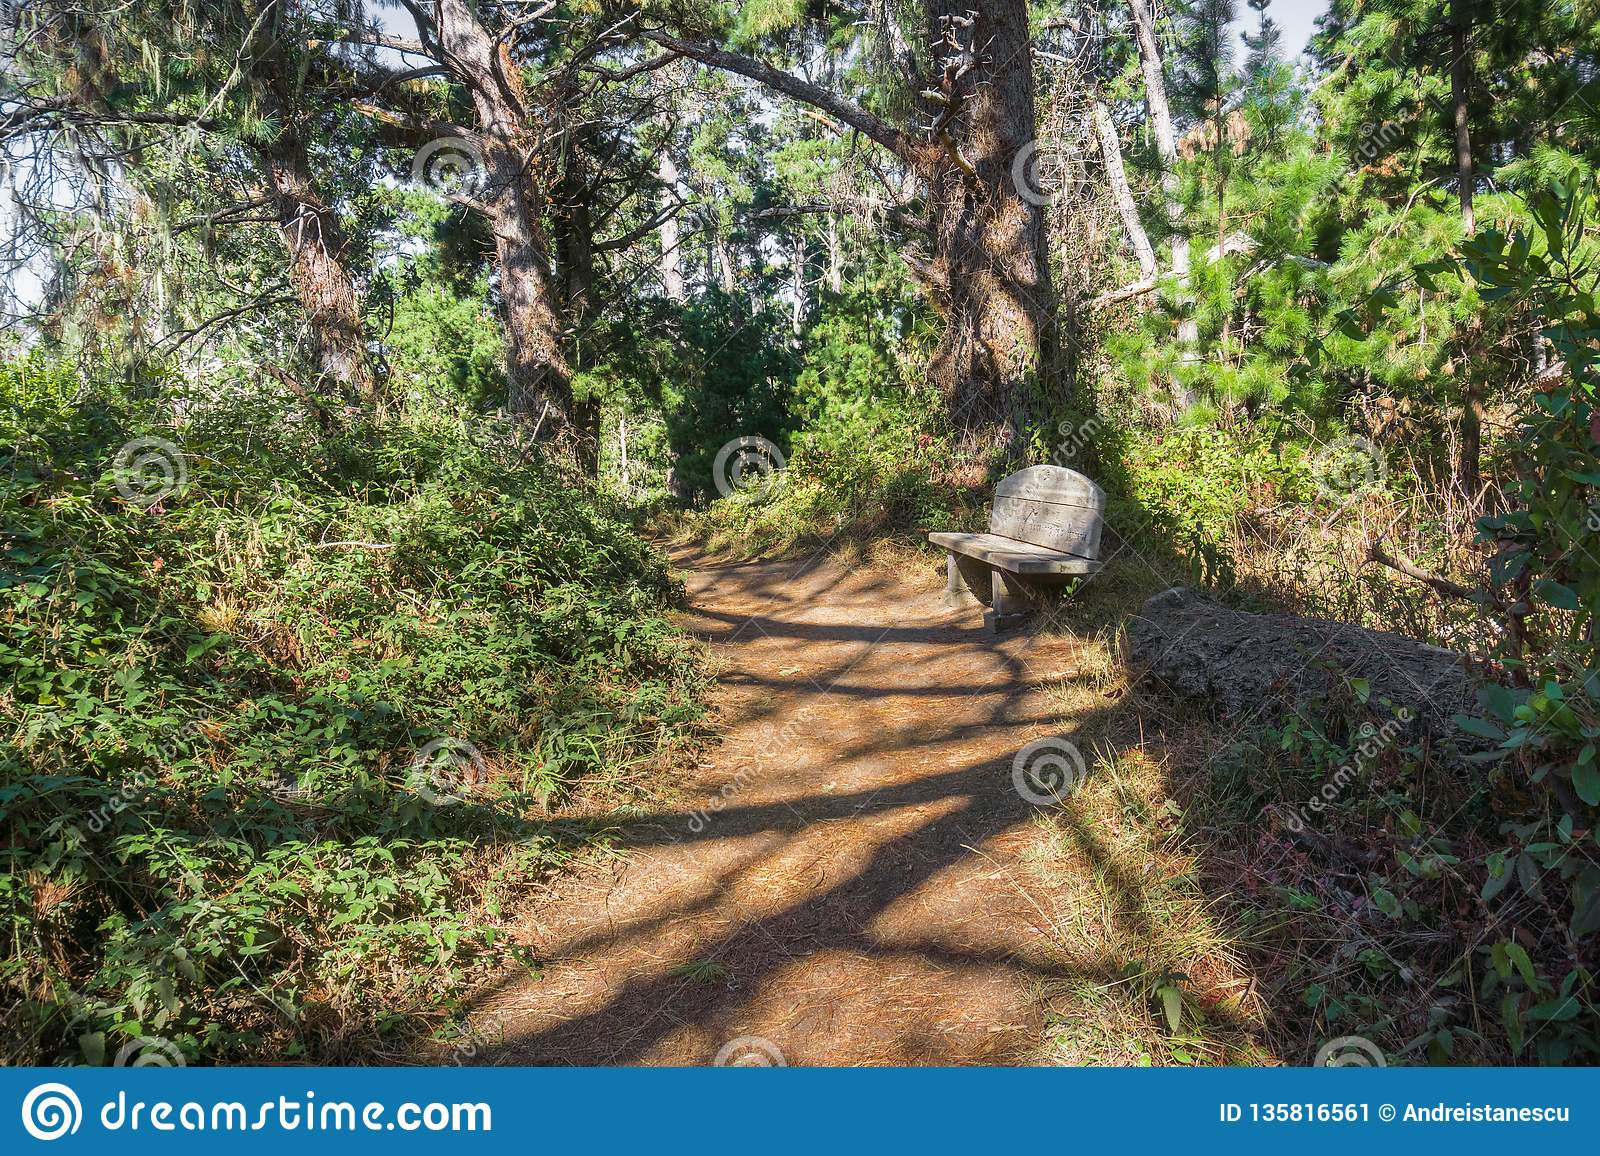 Trail through the forest of Point Lobos State Natural Reserve, Carmel-by-the-Sea, Monterey Peninsula, California